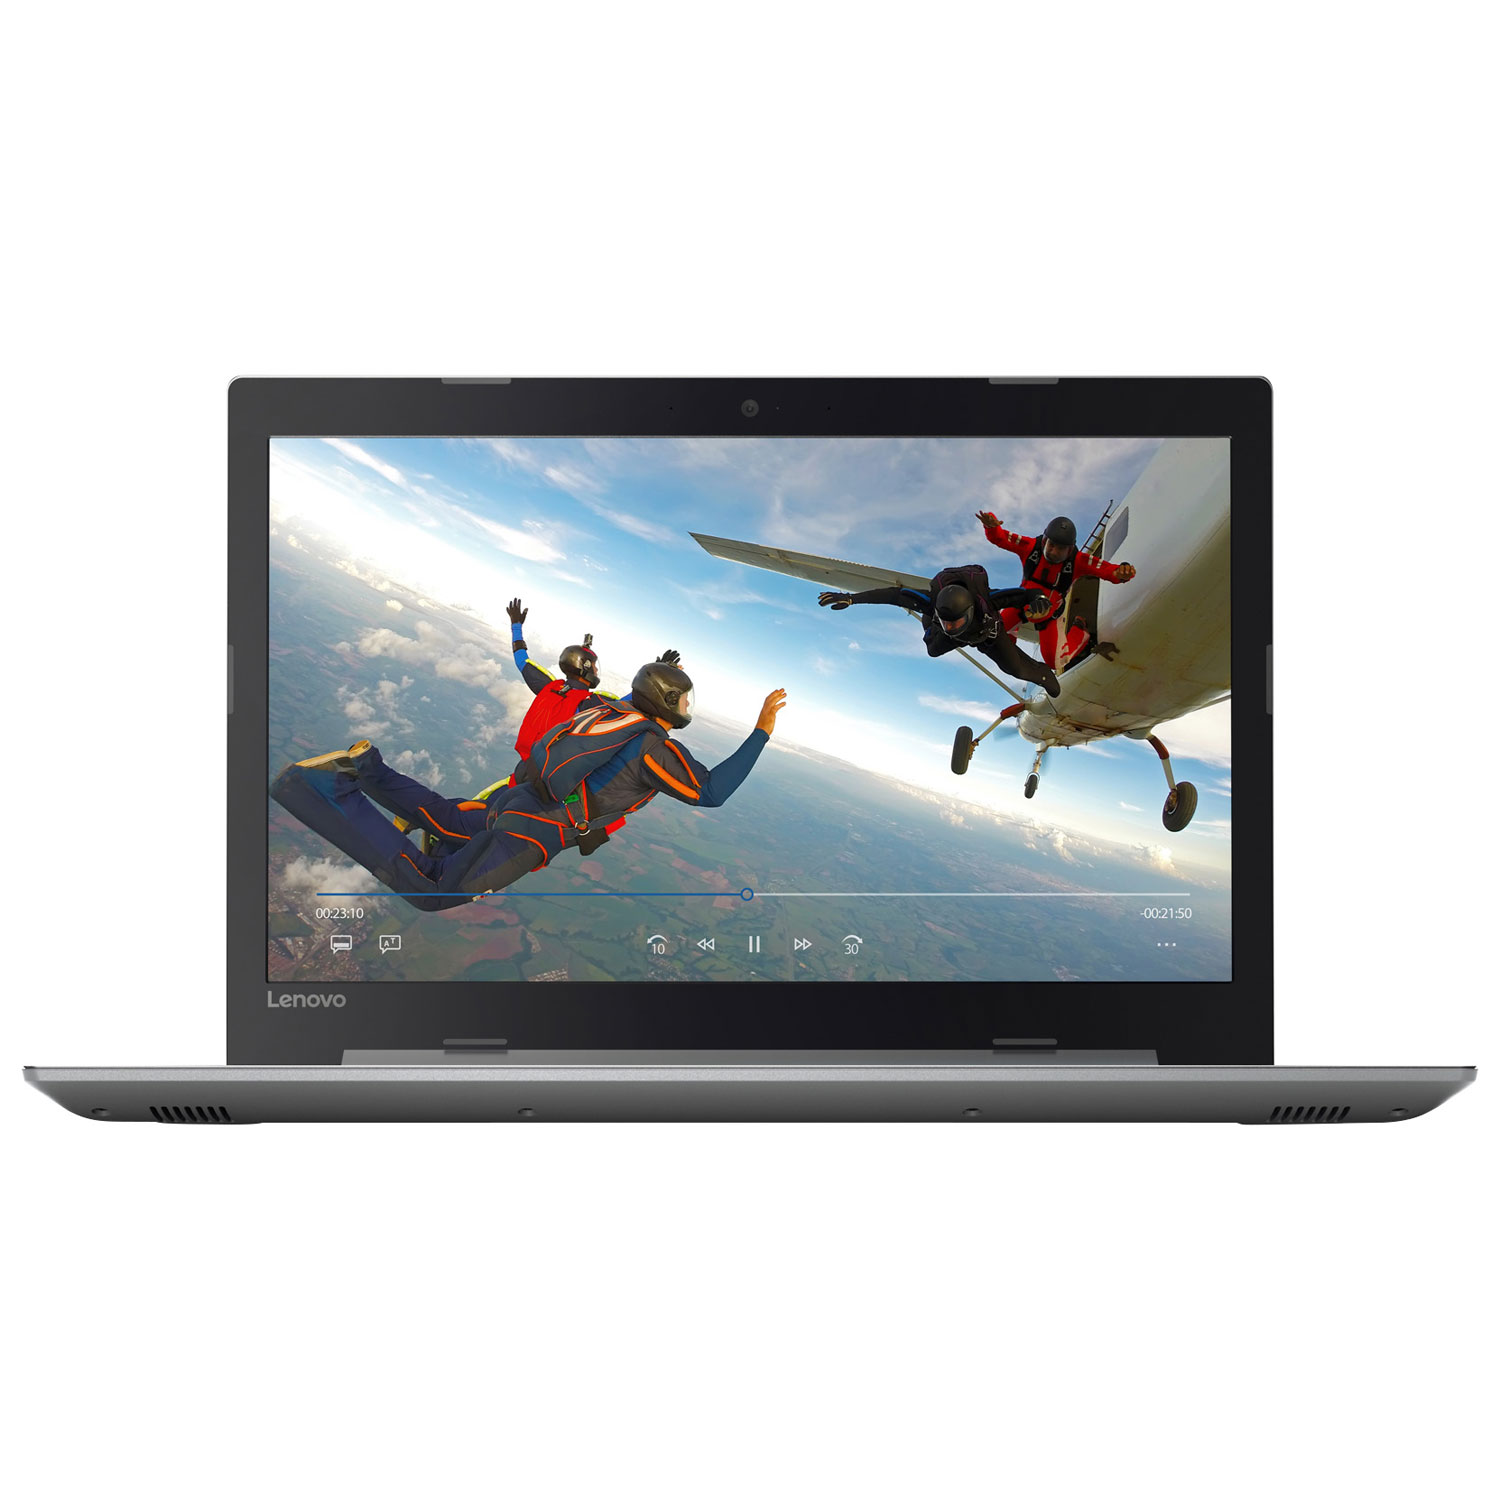 Lenovo Laptop Lease To Own Furniture Appliances Electronics And Computers From